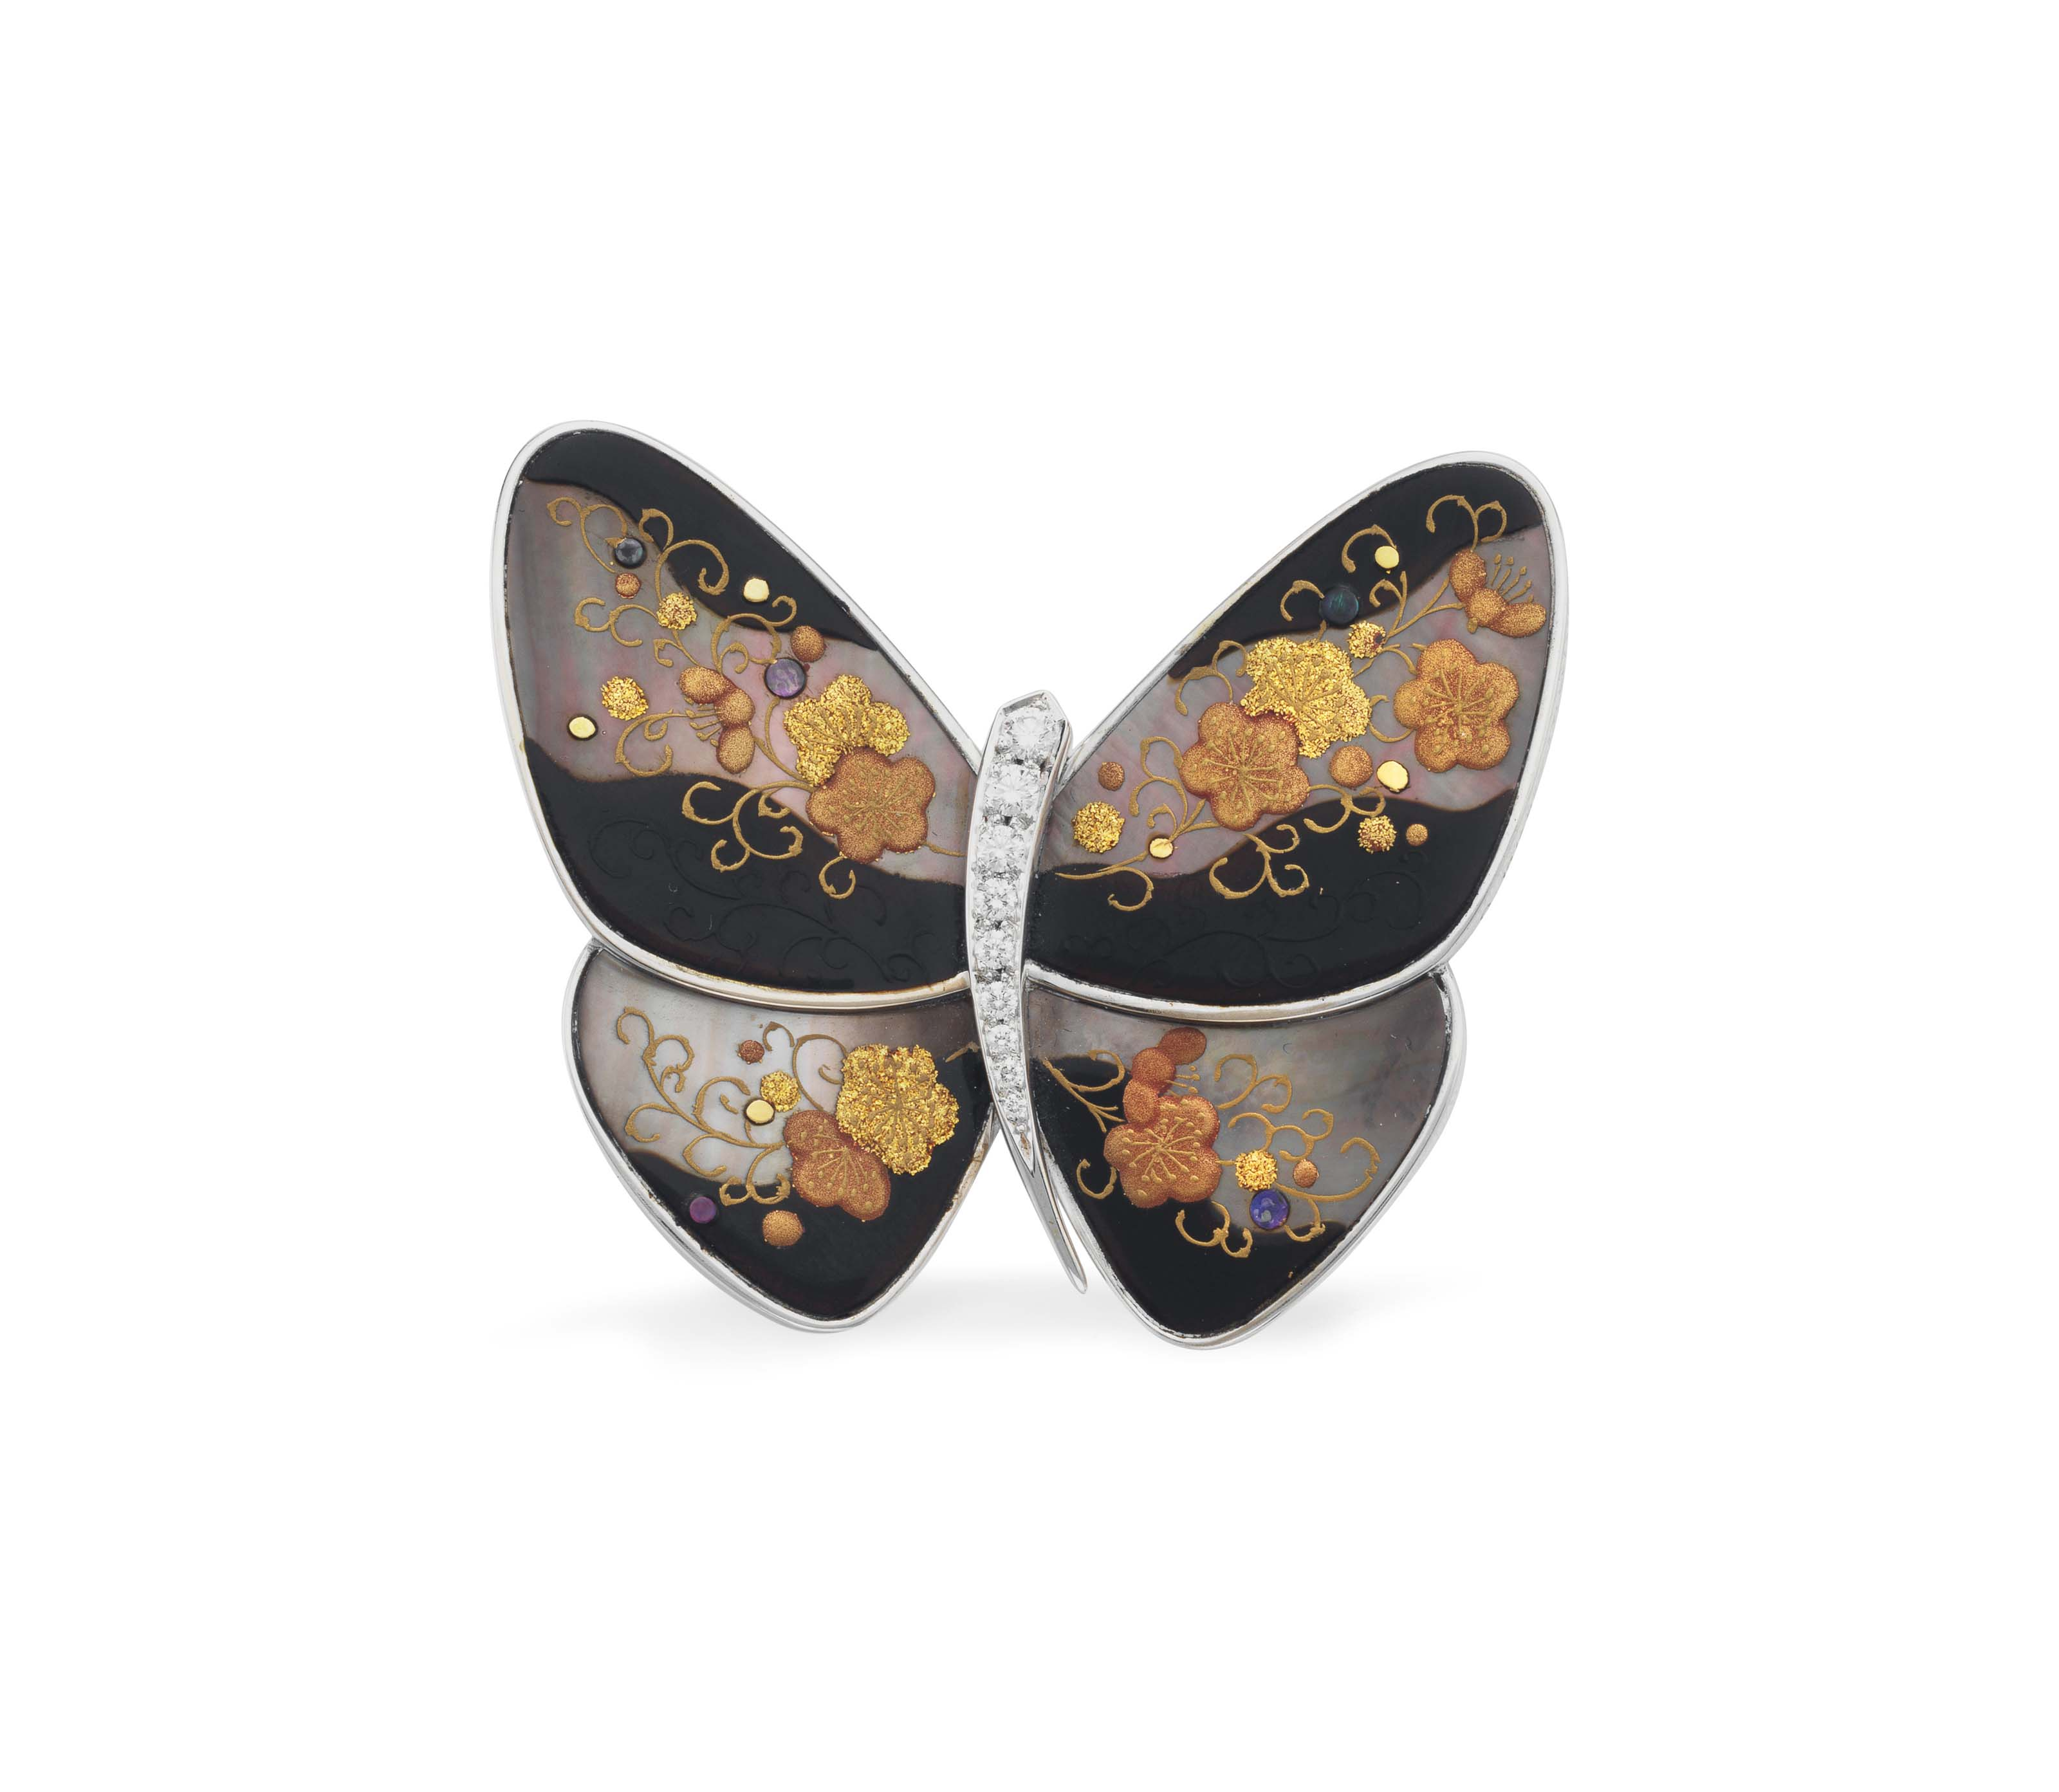 ~A DIAMOND, MOTHER-OF-PEARL AND LACQUER 'UME' BUTTERFLY BROOCH, BY VAN CLEEF & ARPELS